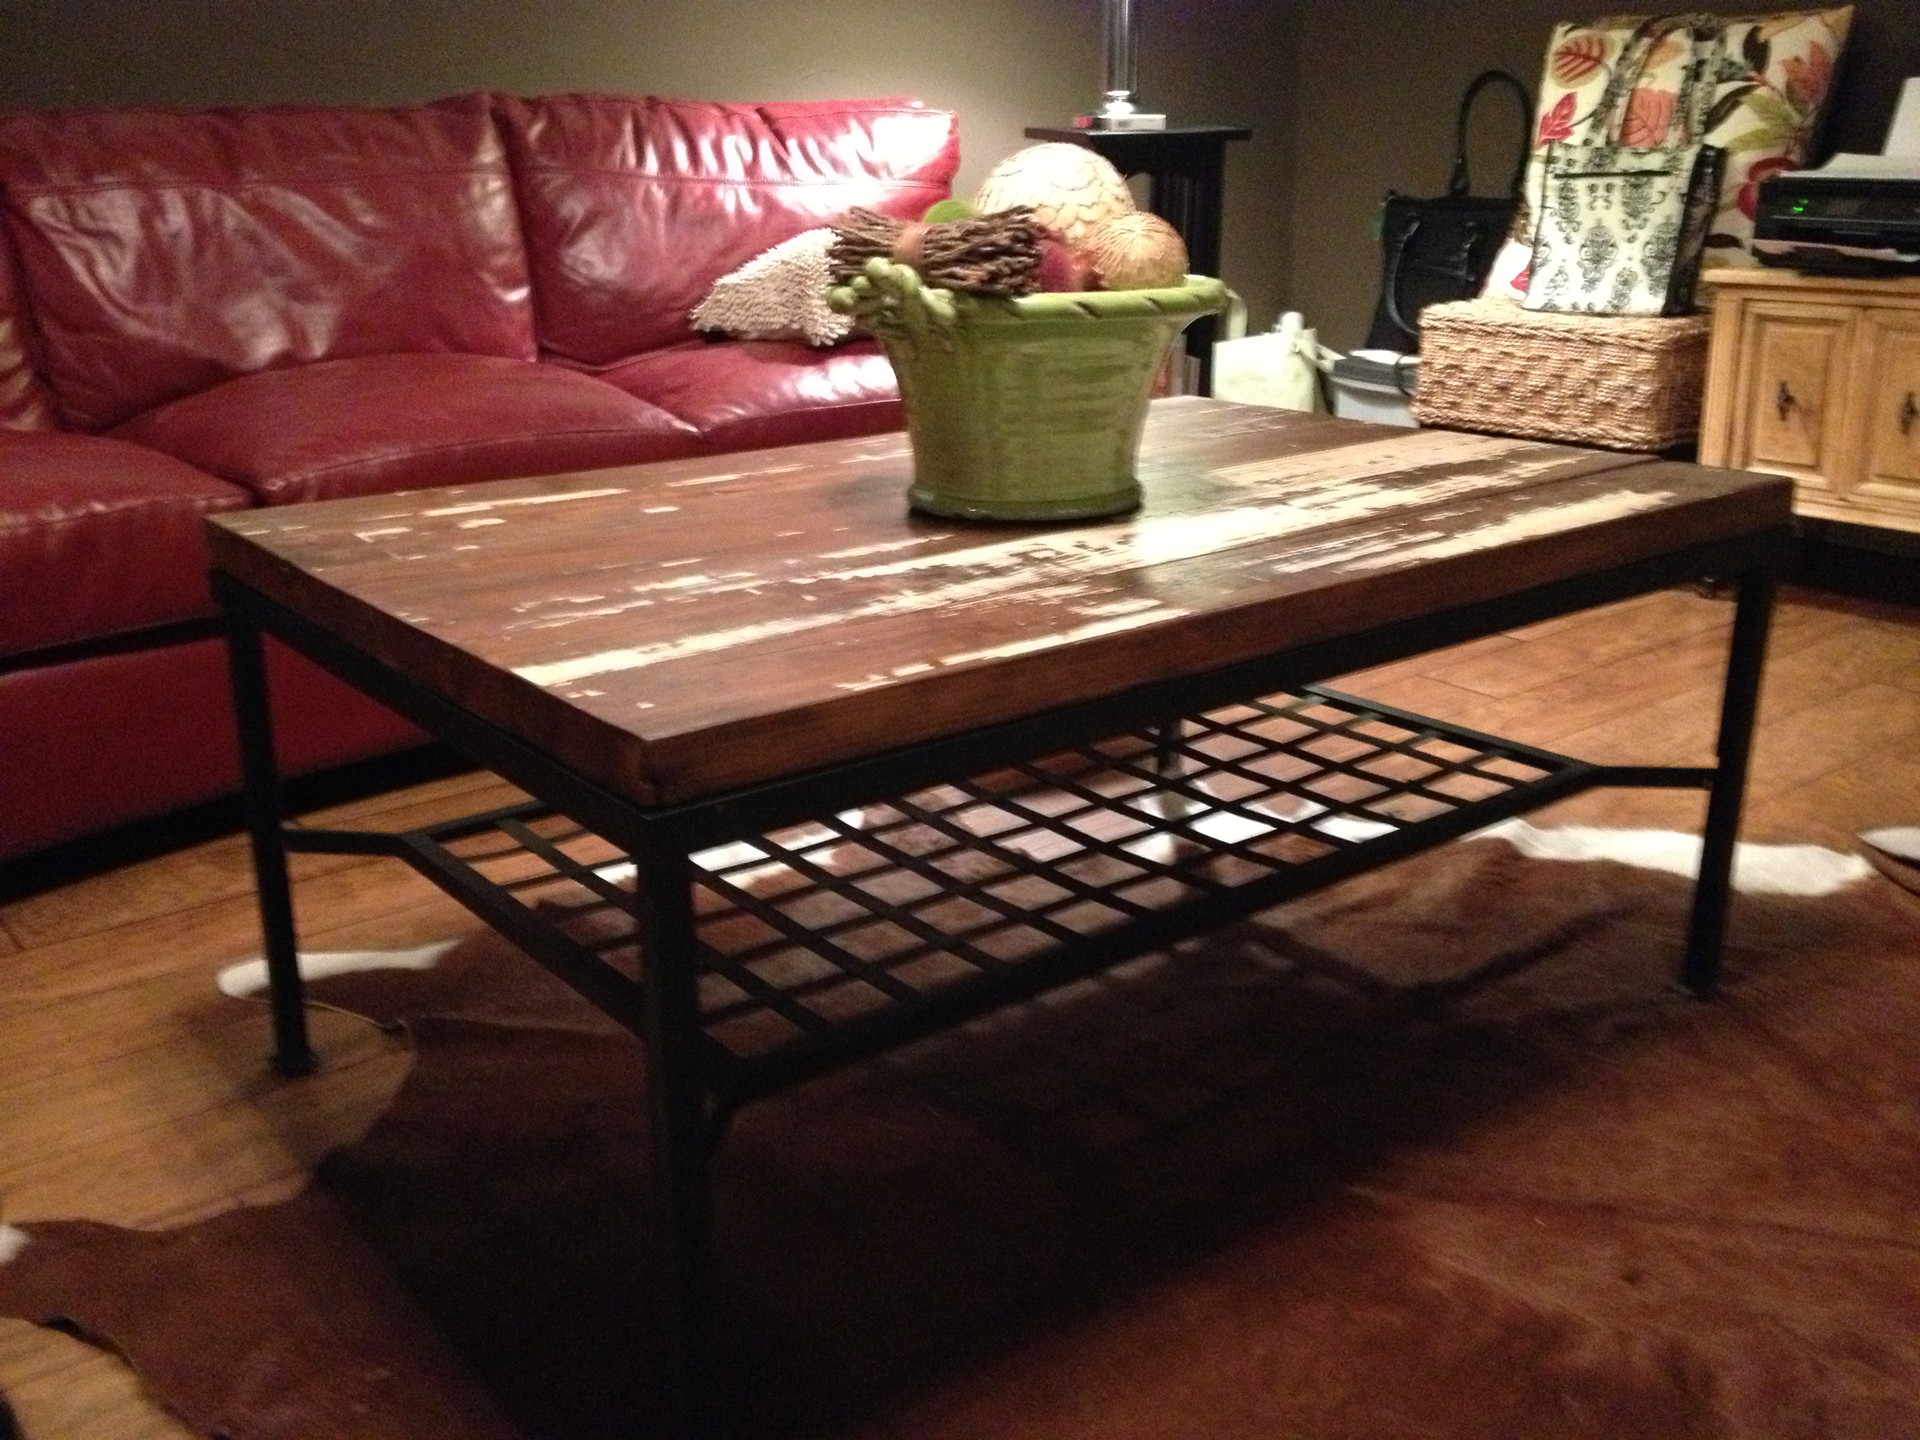 Reclaimed Boy Scout Cabin pine table